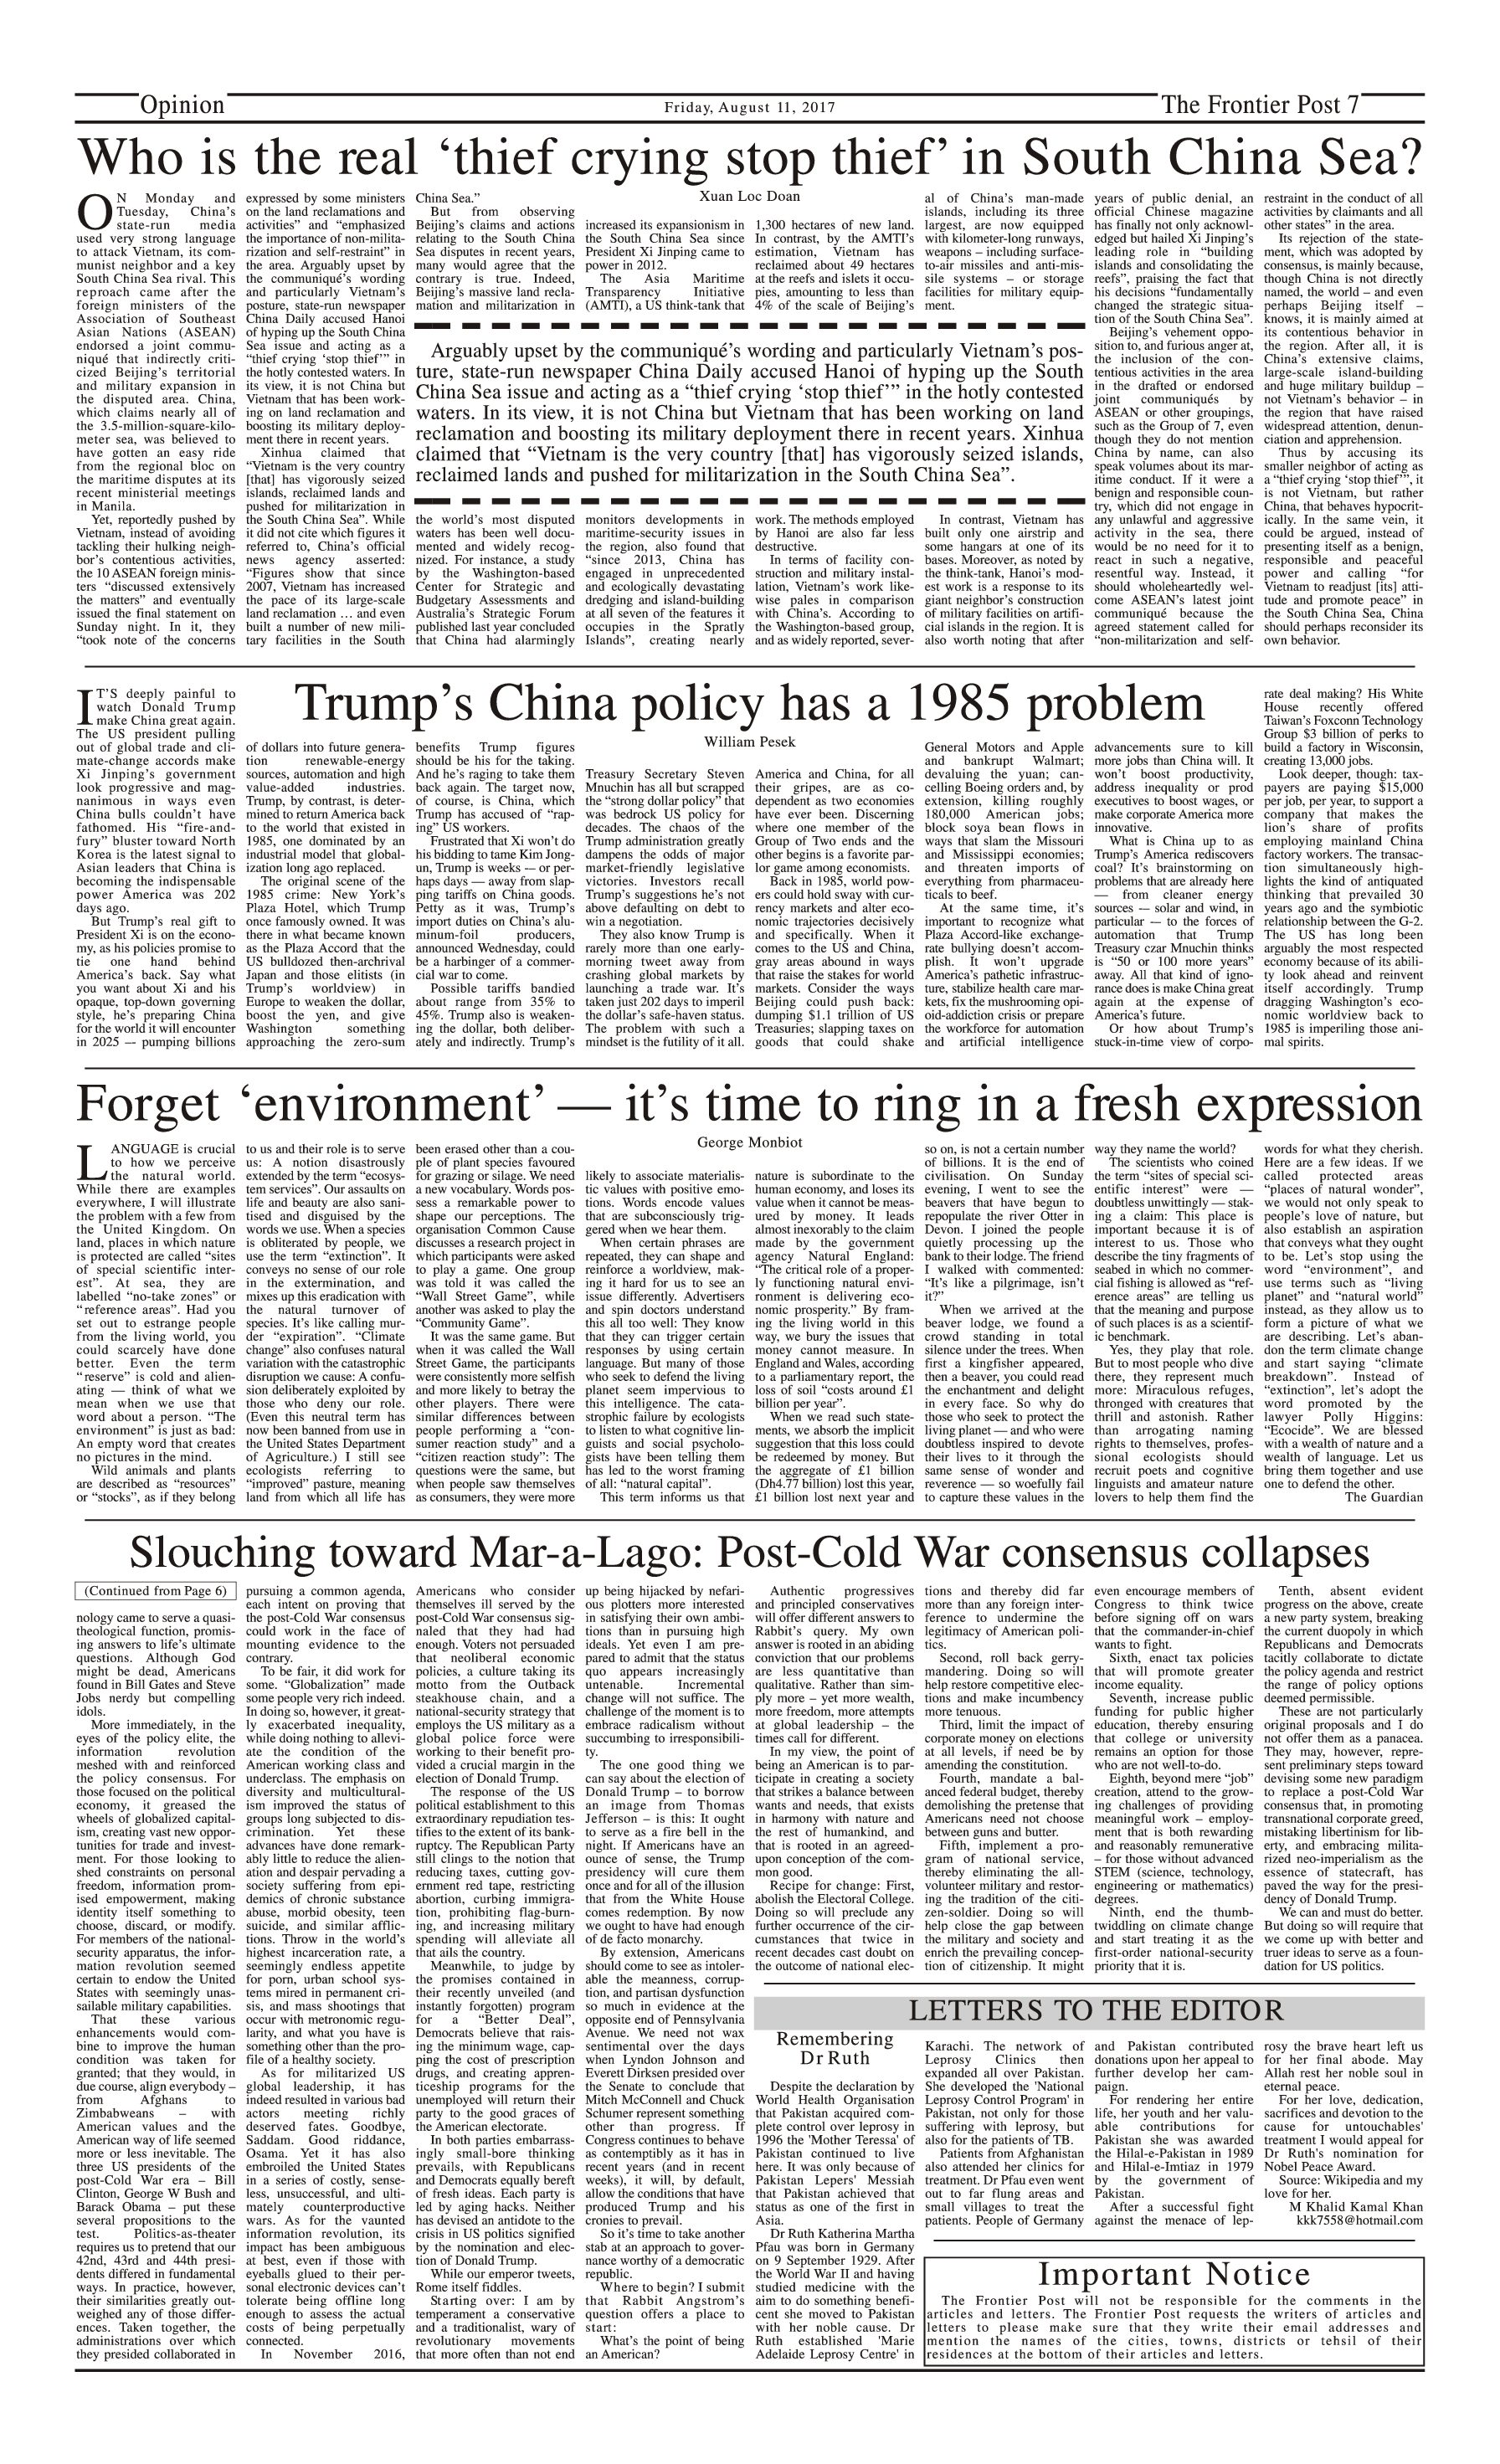 Opinion Page 11